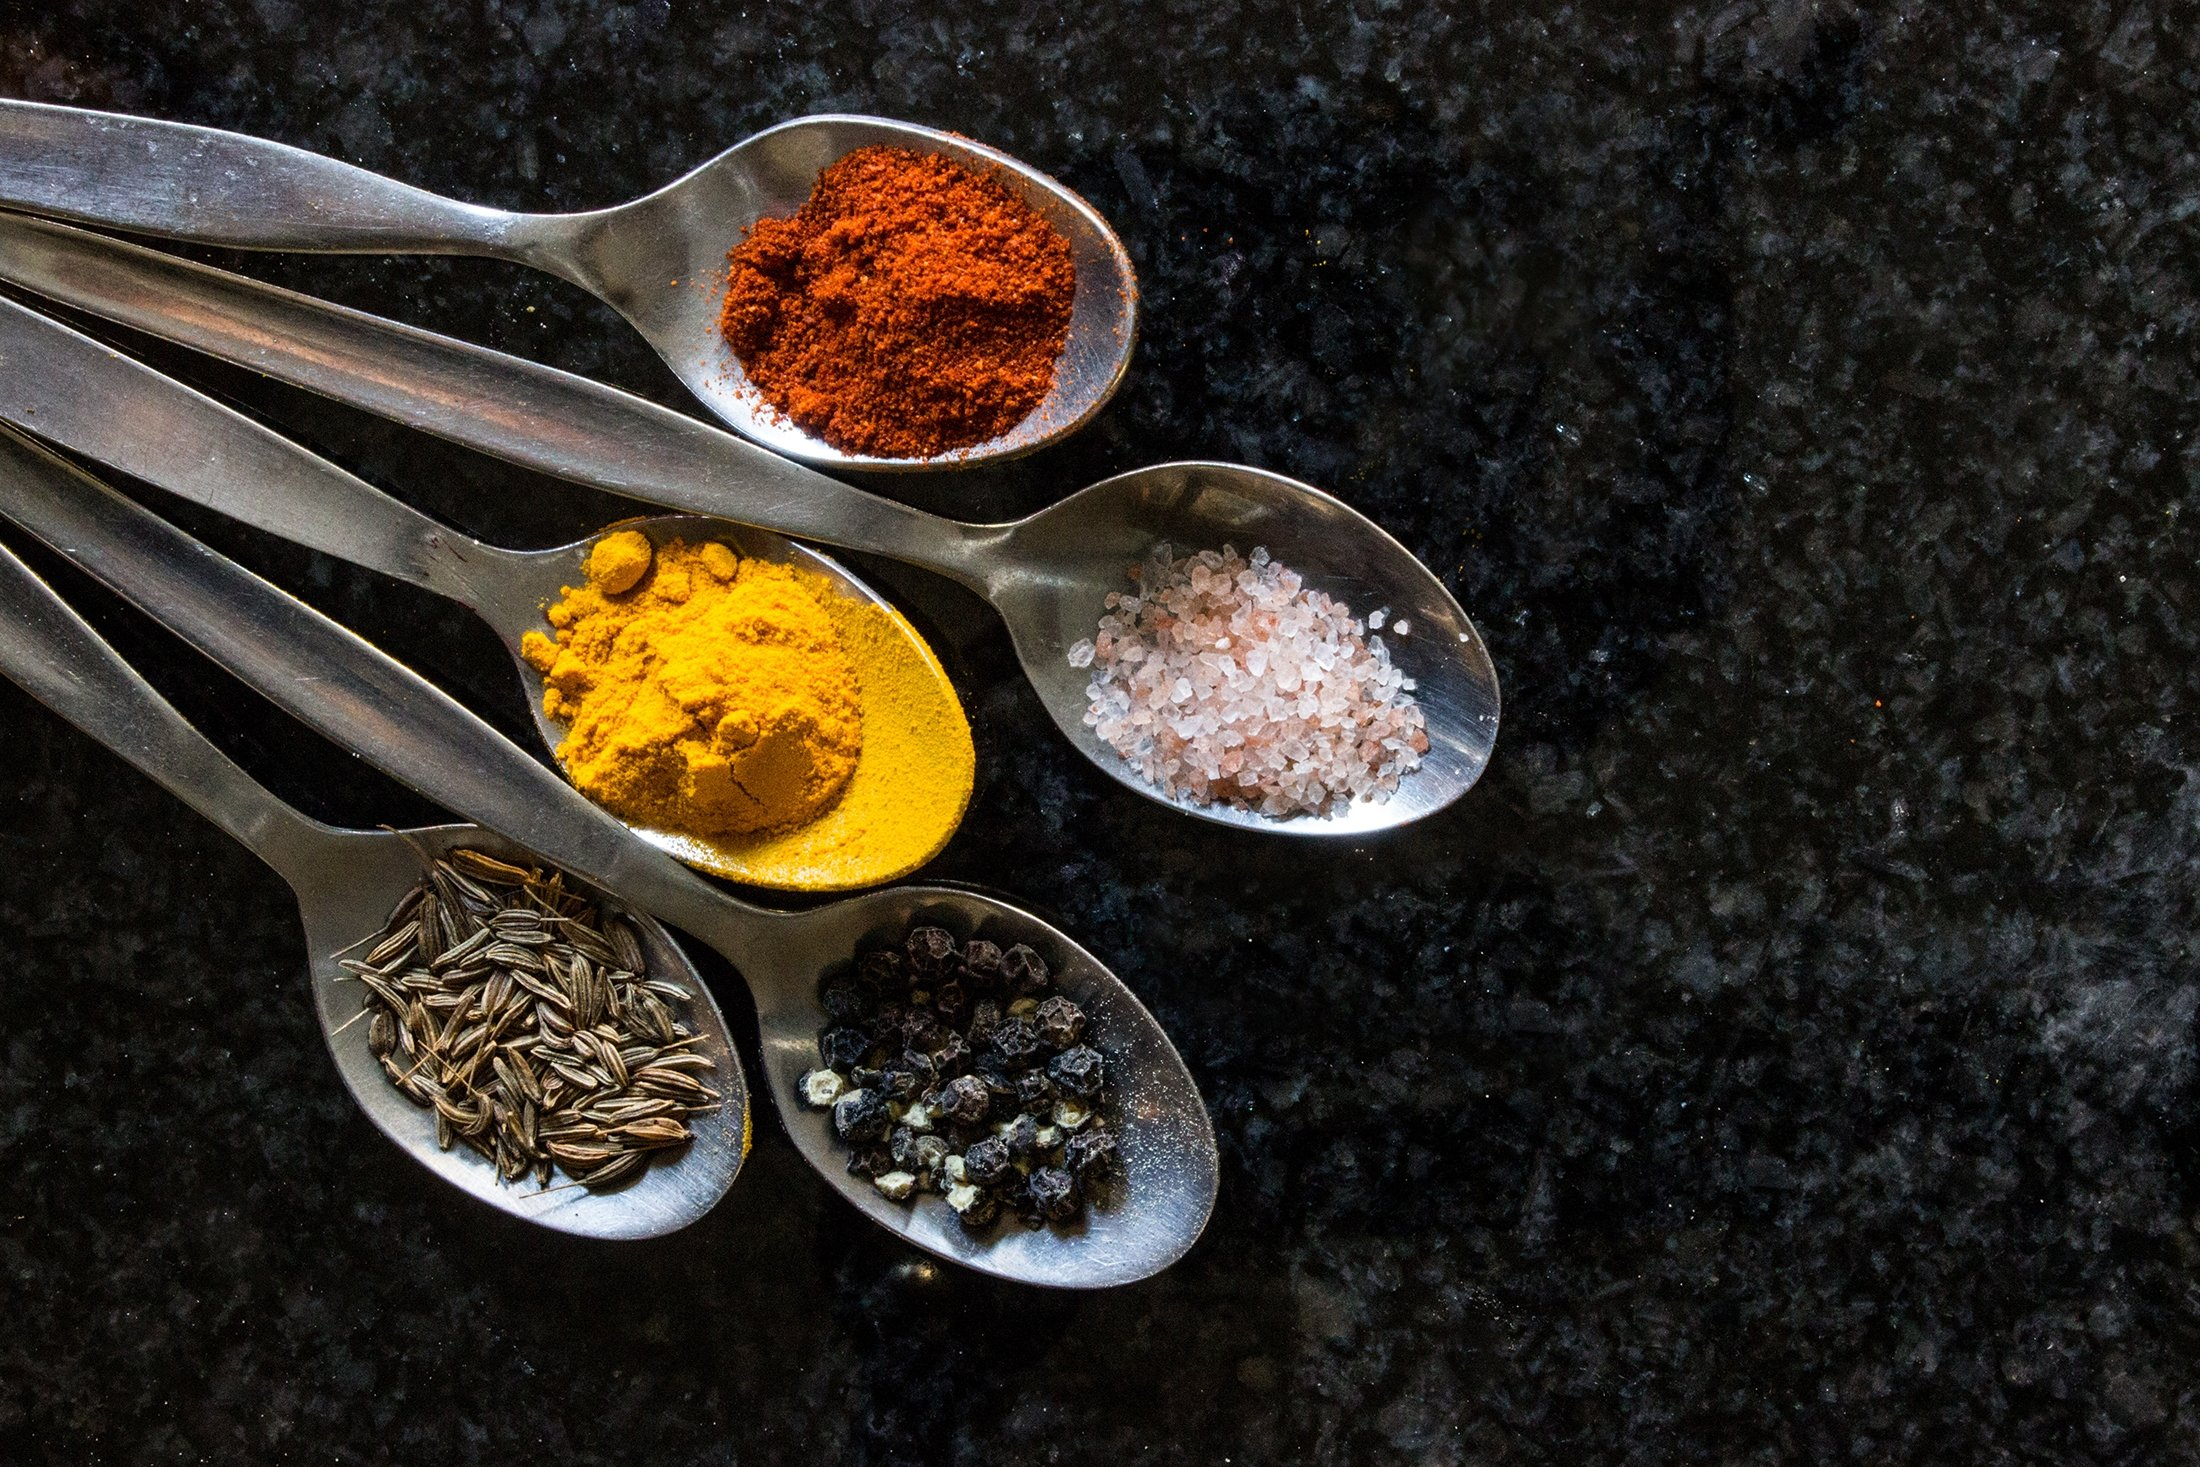 Five Turkish teaspoons filled with various types of spices, namely salt, pepper, cumin, turmeric and curry powder. (Shutterstock Photo)